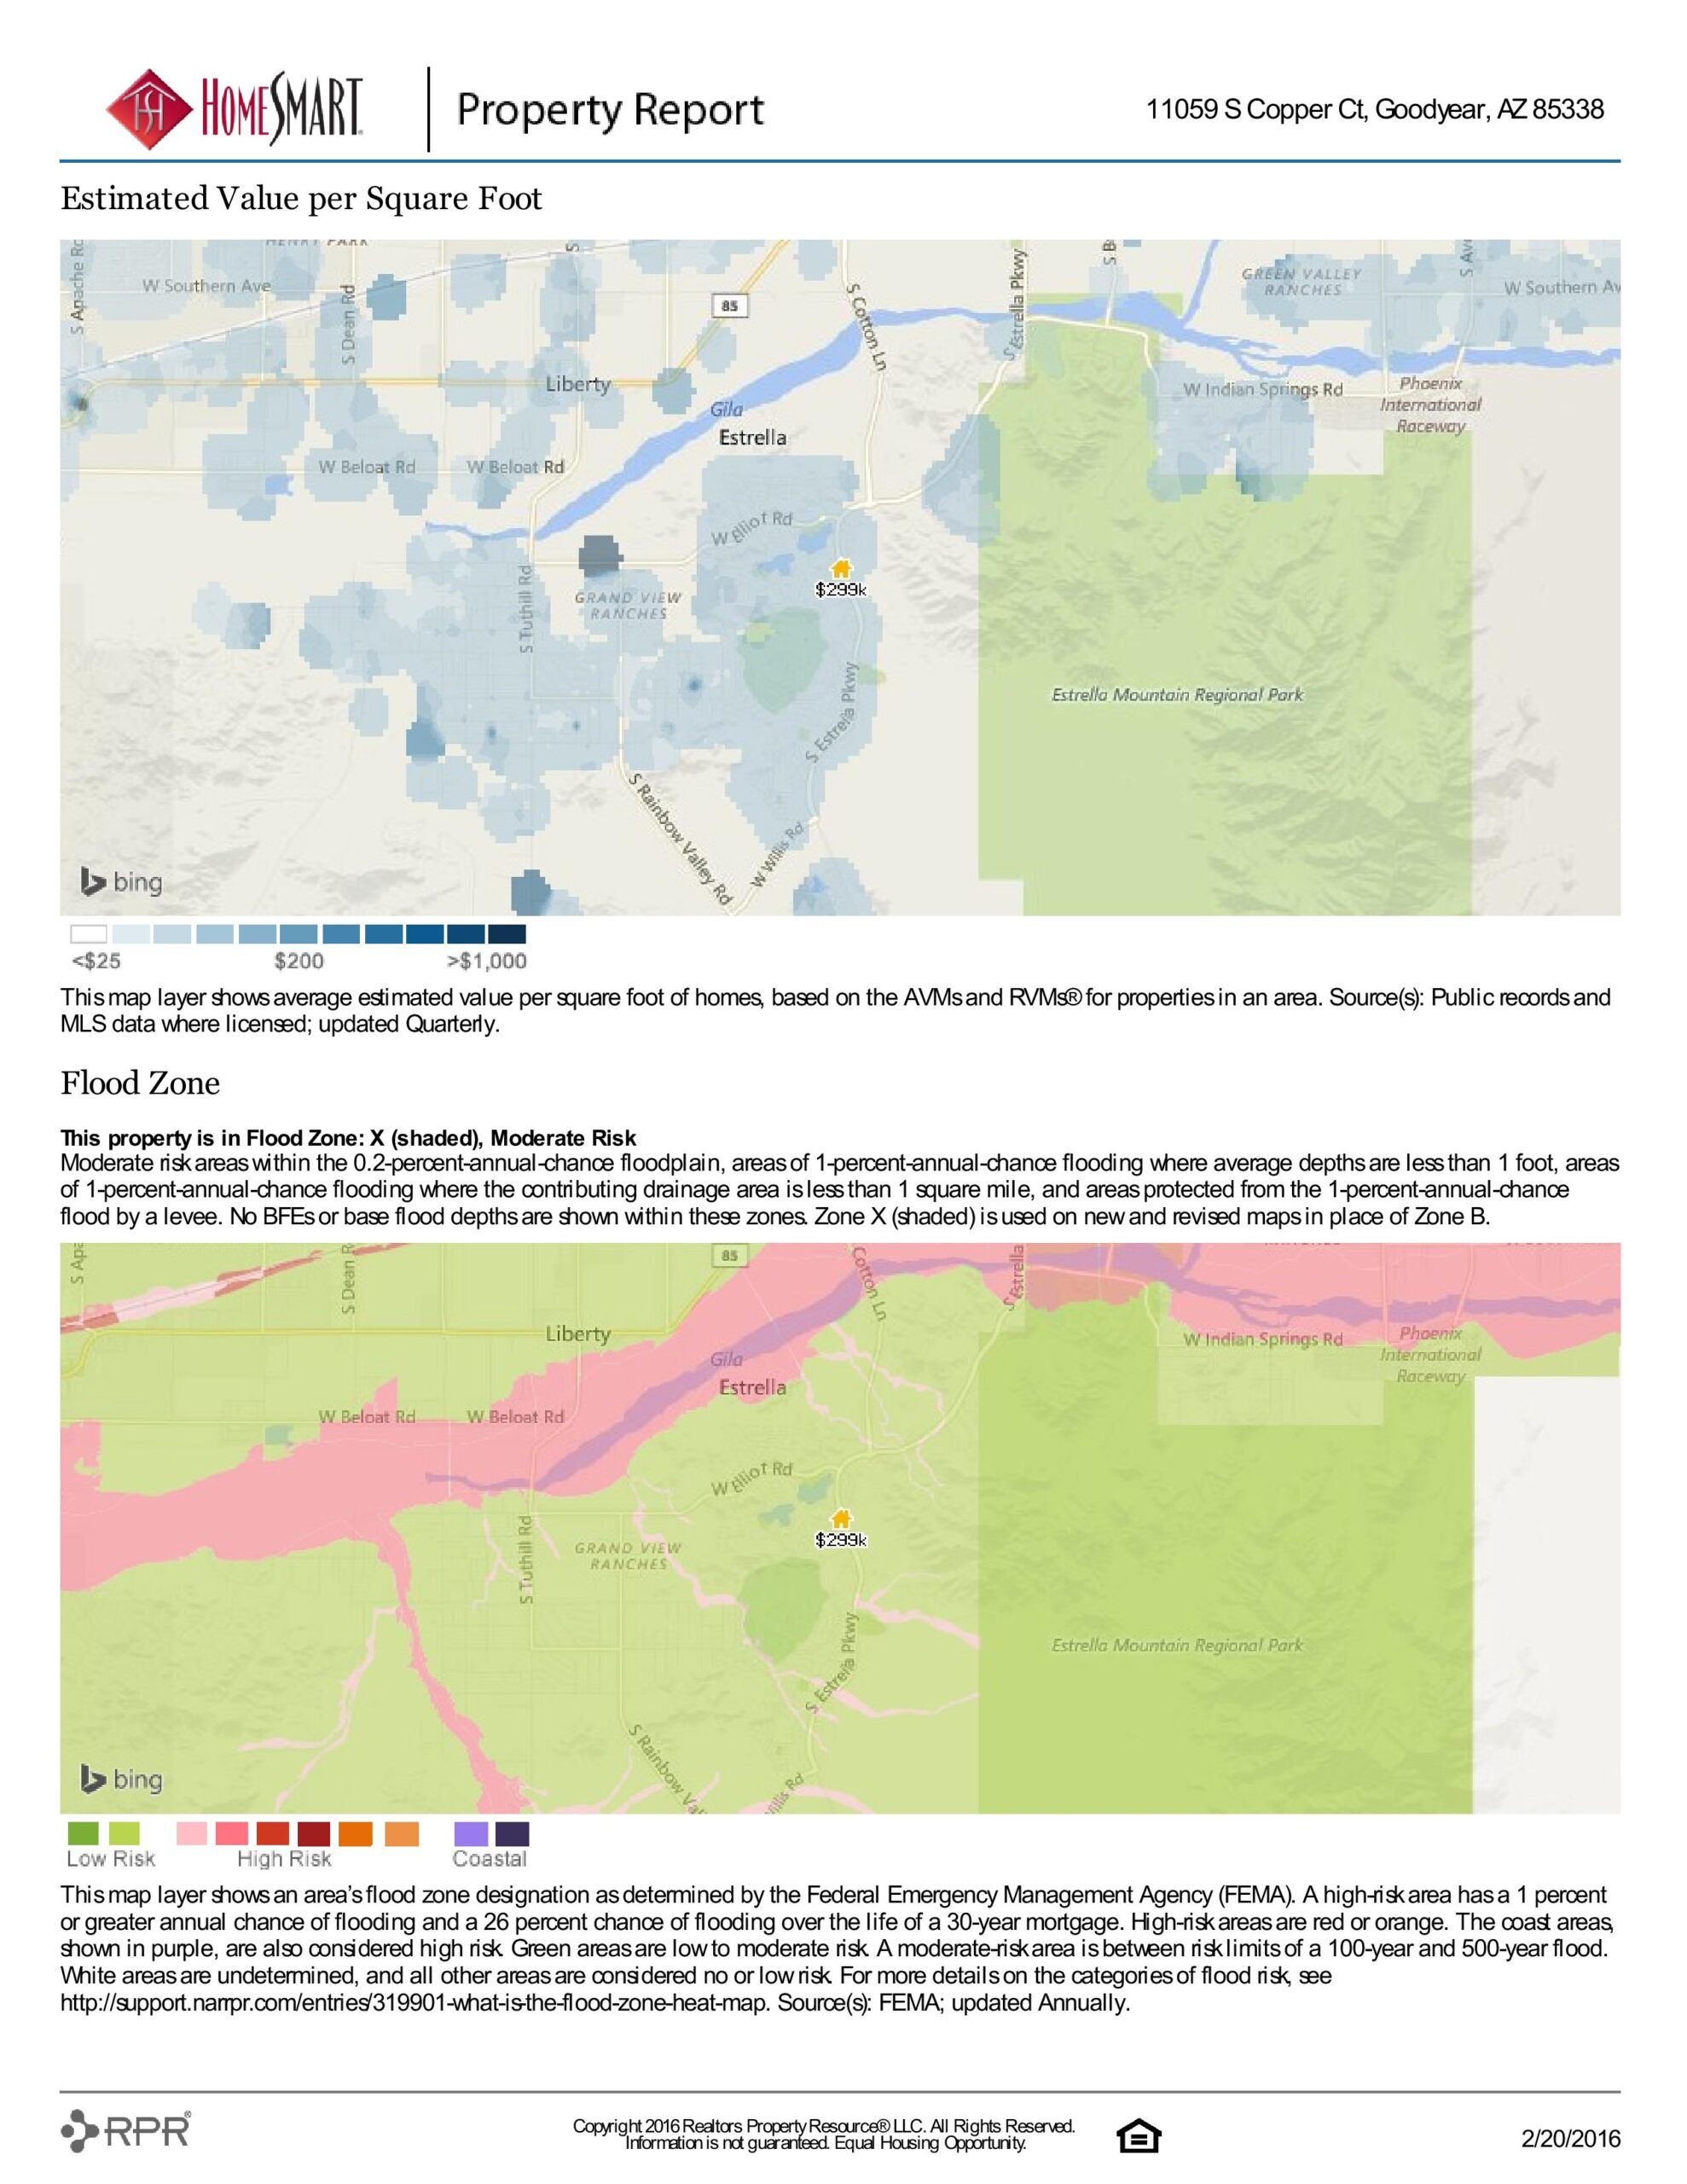 11059 S COPPER CT PROPERTY REPORT-page-016